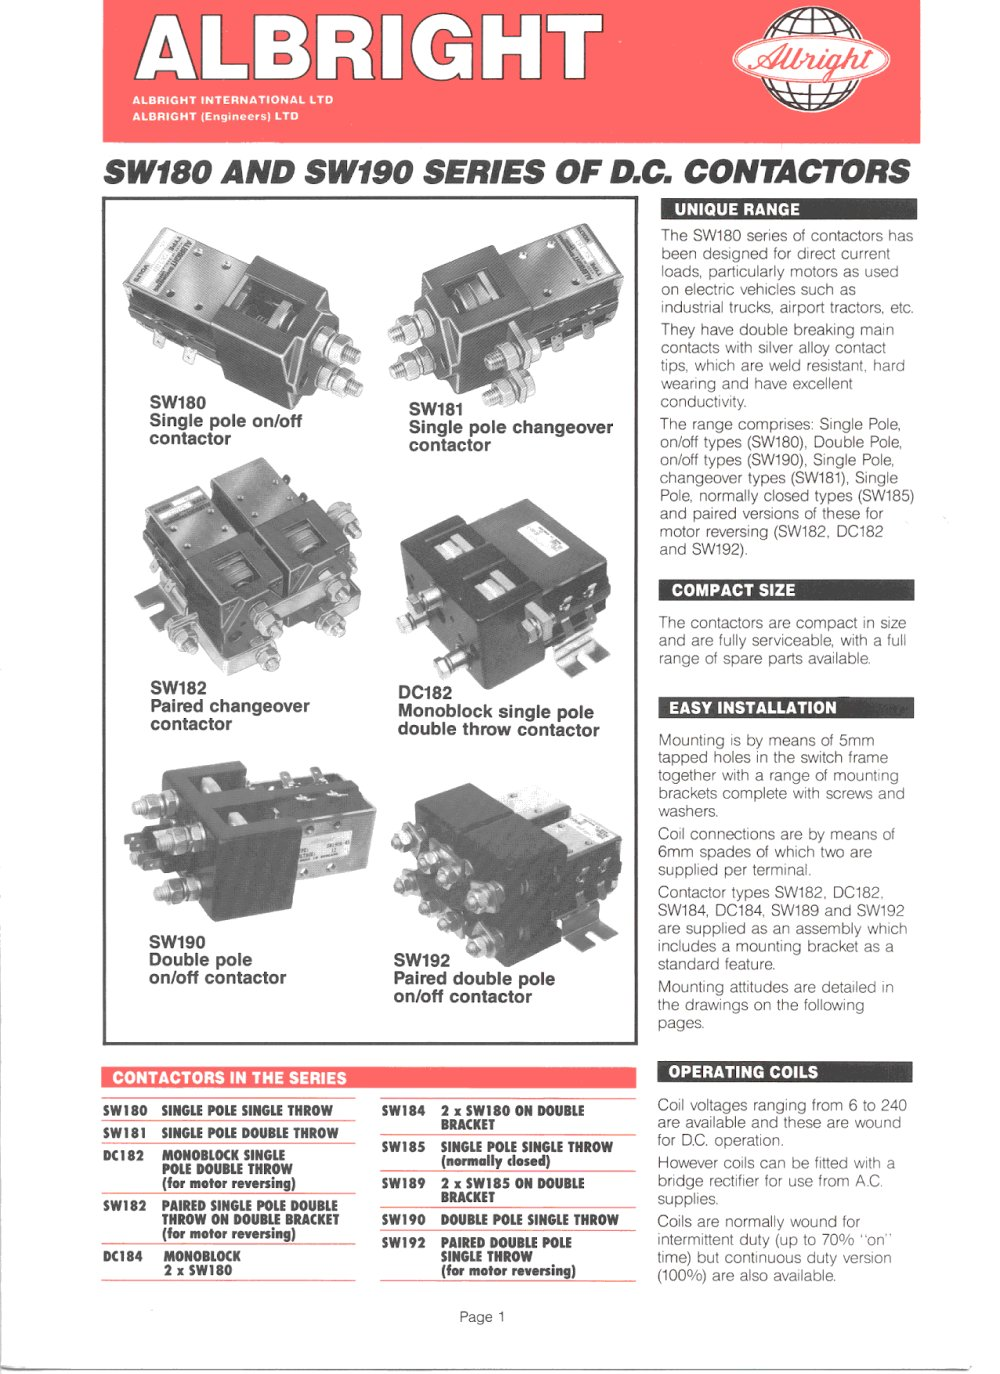 sw180 series dc contactors 67224_1b sw180 series of d c contactors albright international pdf albright contactor wiring diagram at gsmportal.co